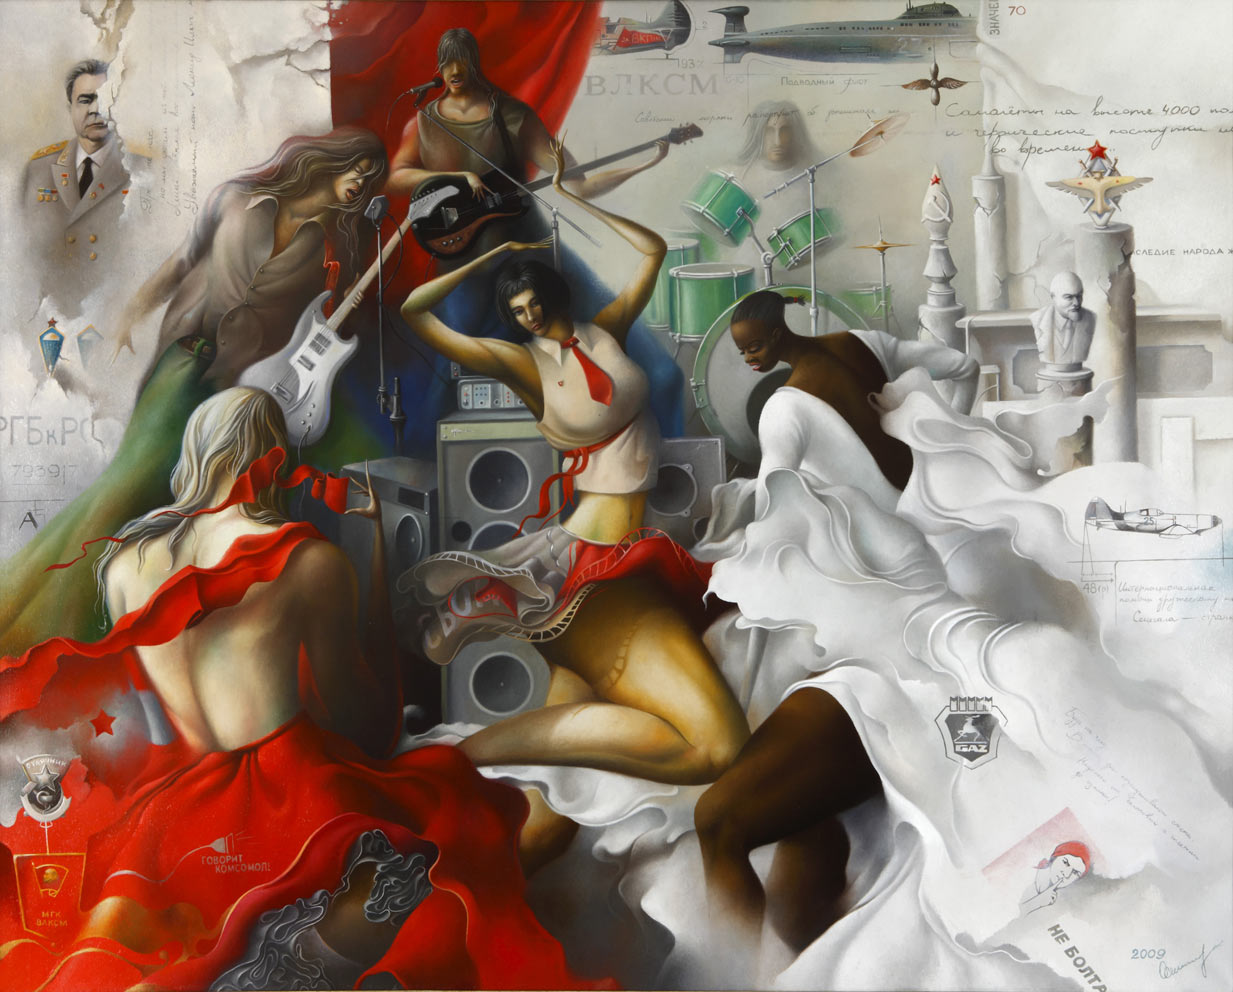 Last dance of outgoing era, 120x140 cm, oil on canvas, 2009.